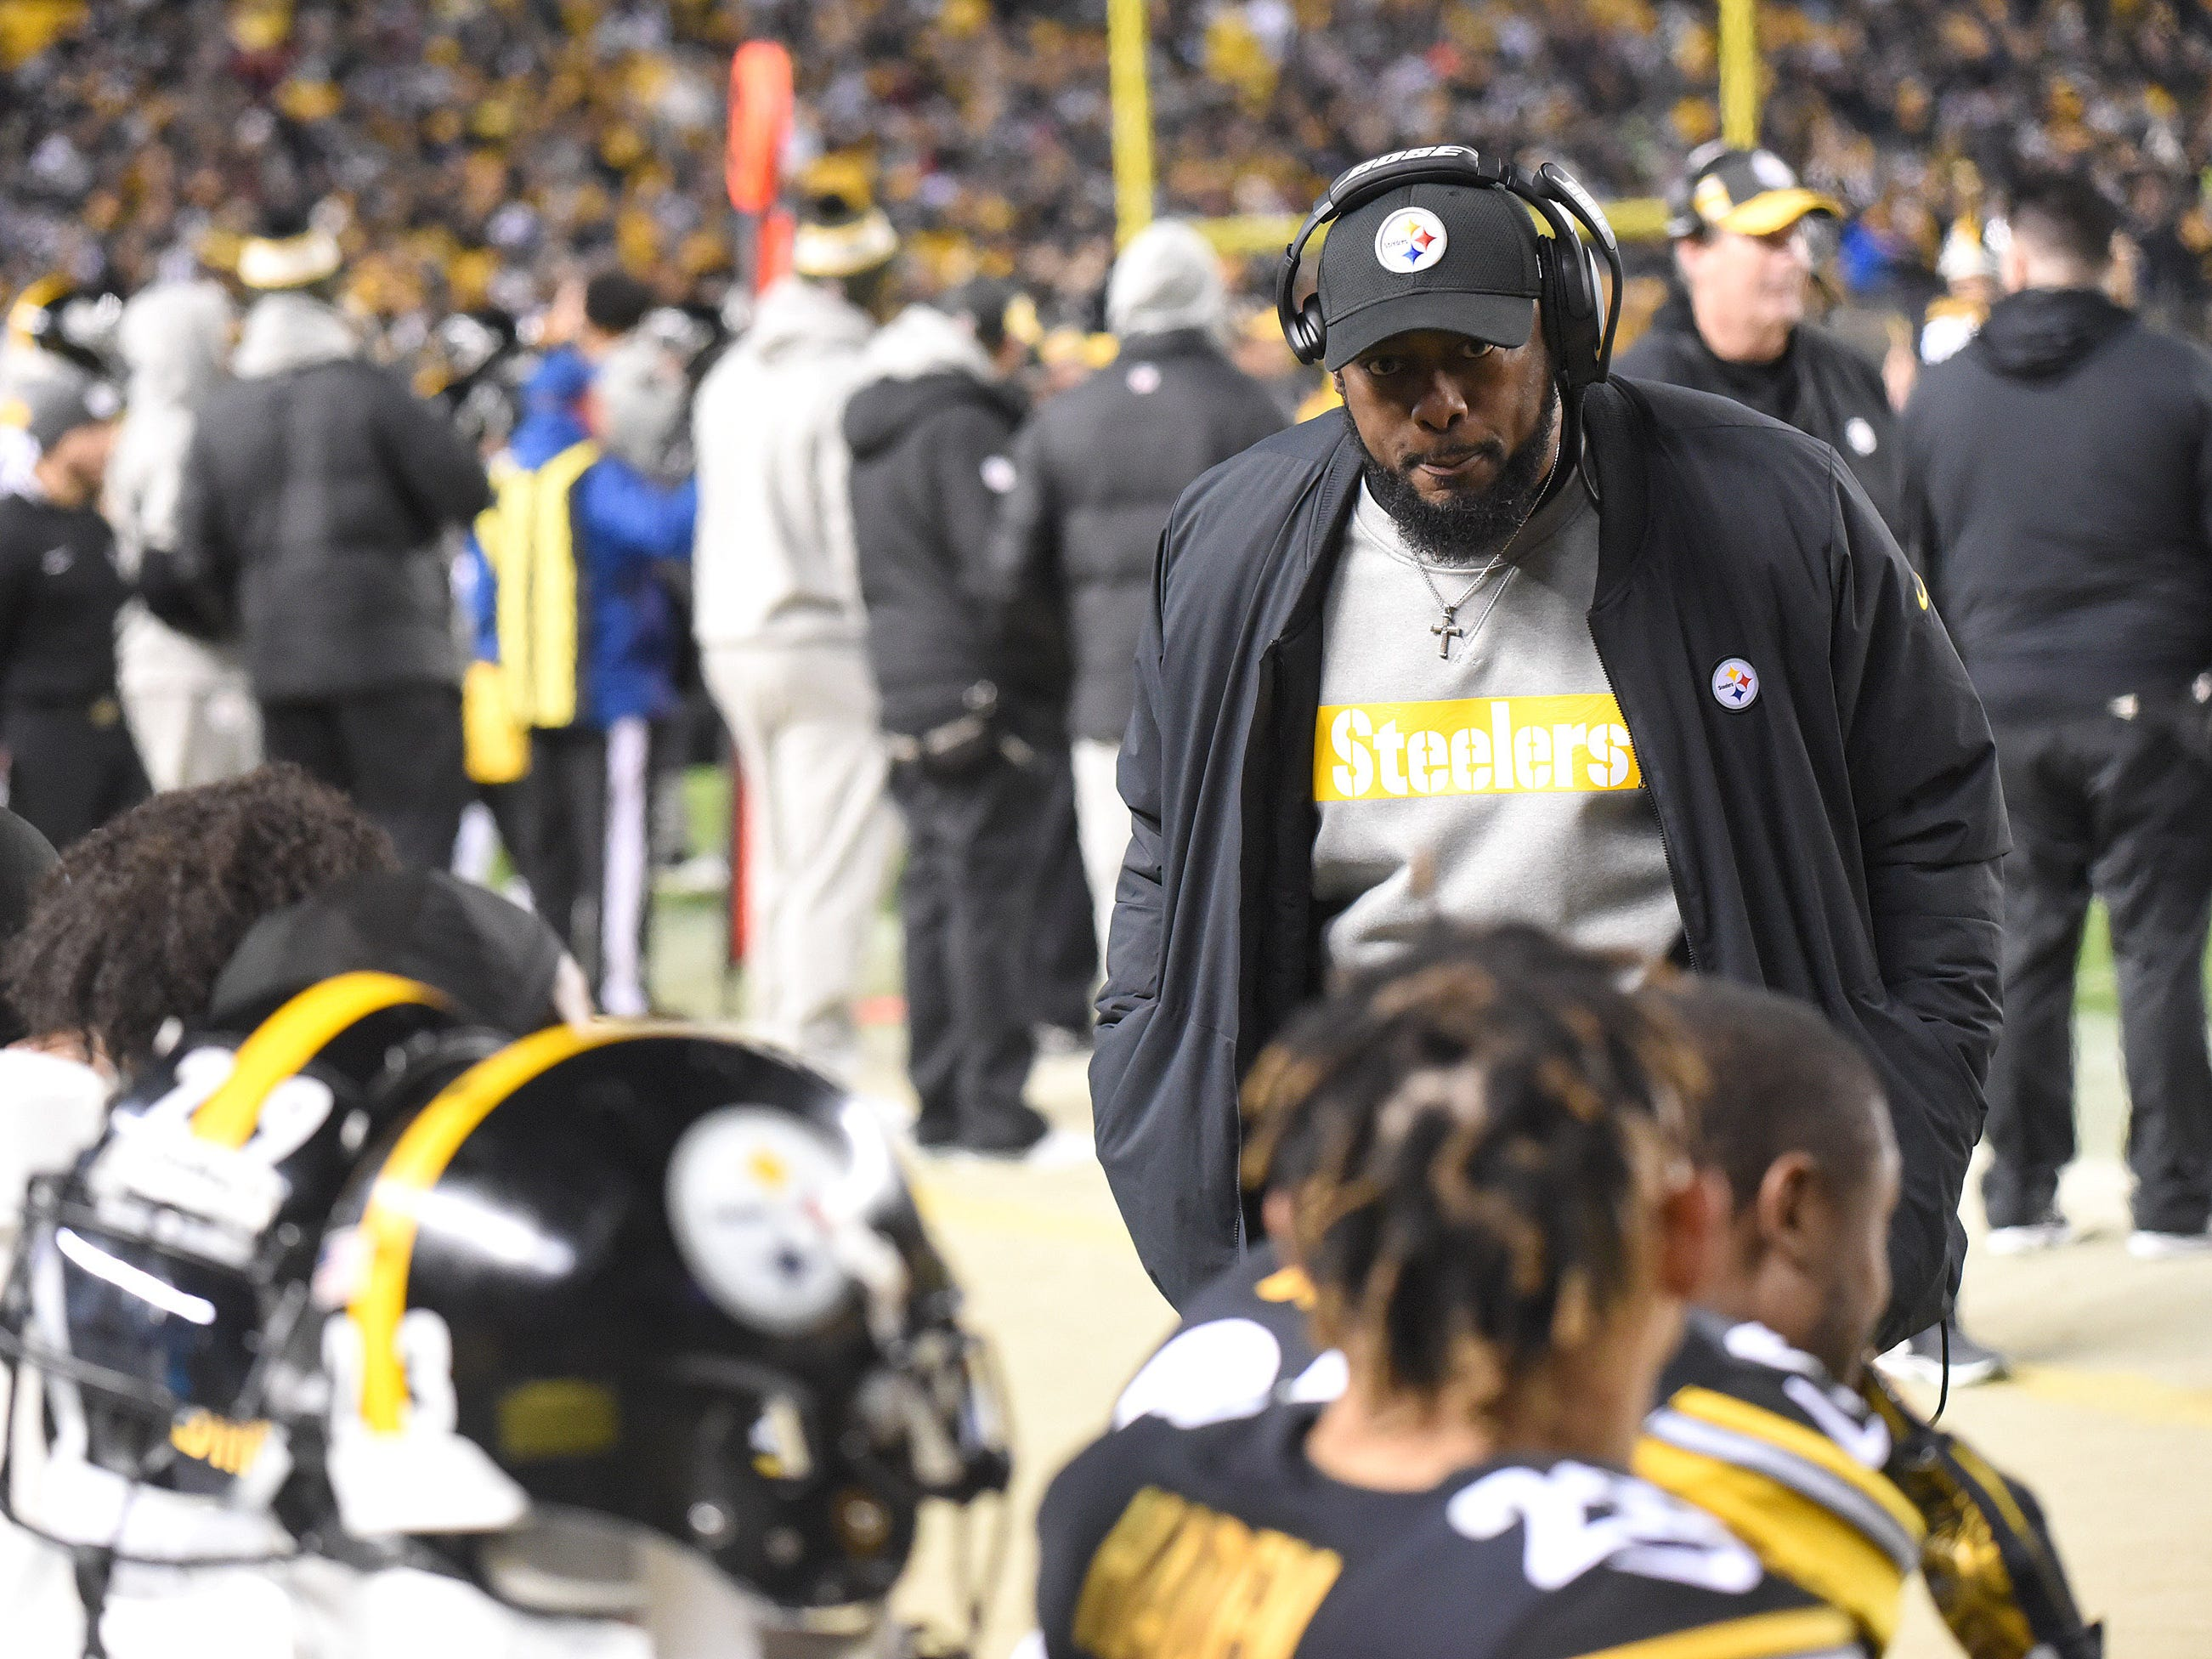 NFL meetings: He said what? Featuring Mike Tomlin, Bill Belichick and Jon Gruden